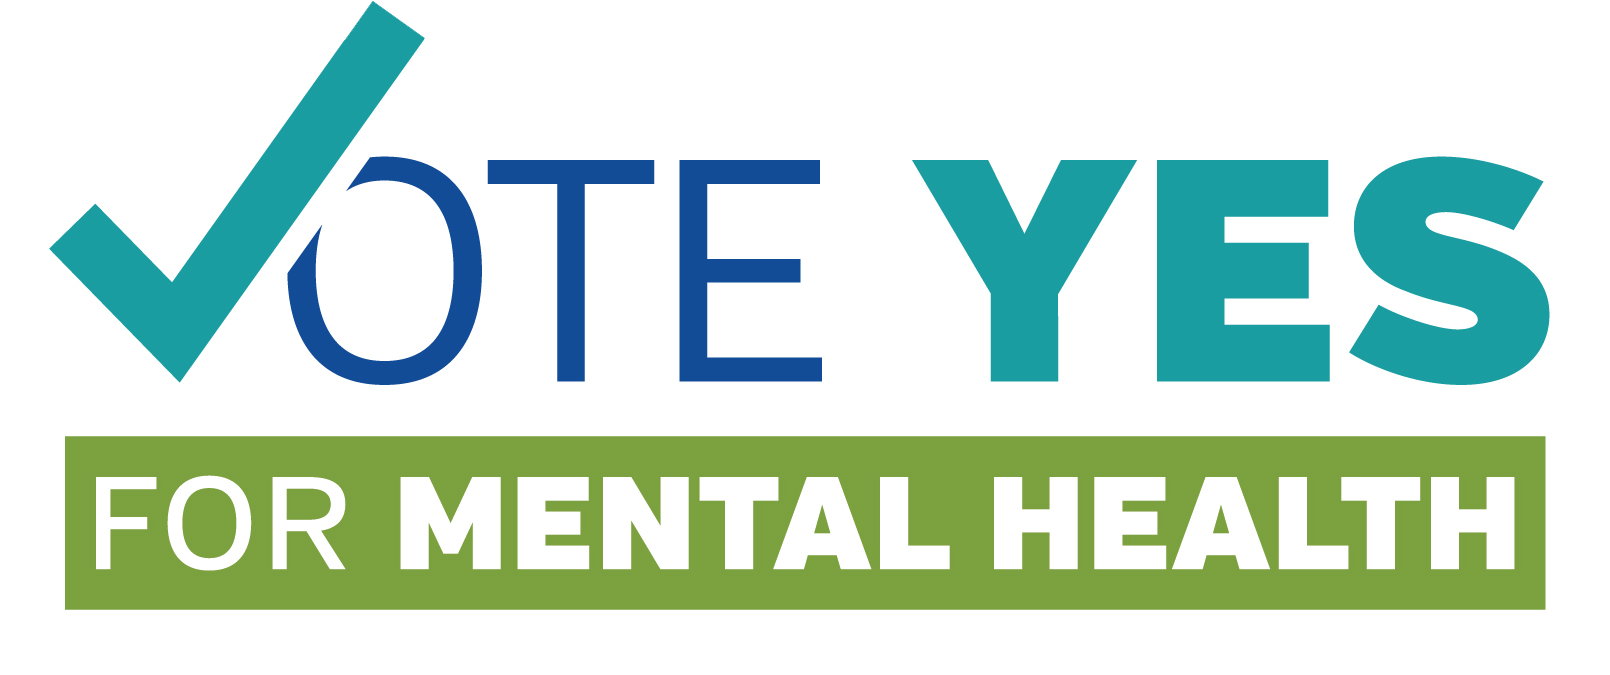 VOTE YES FOR MENTAL HEALTH